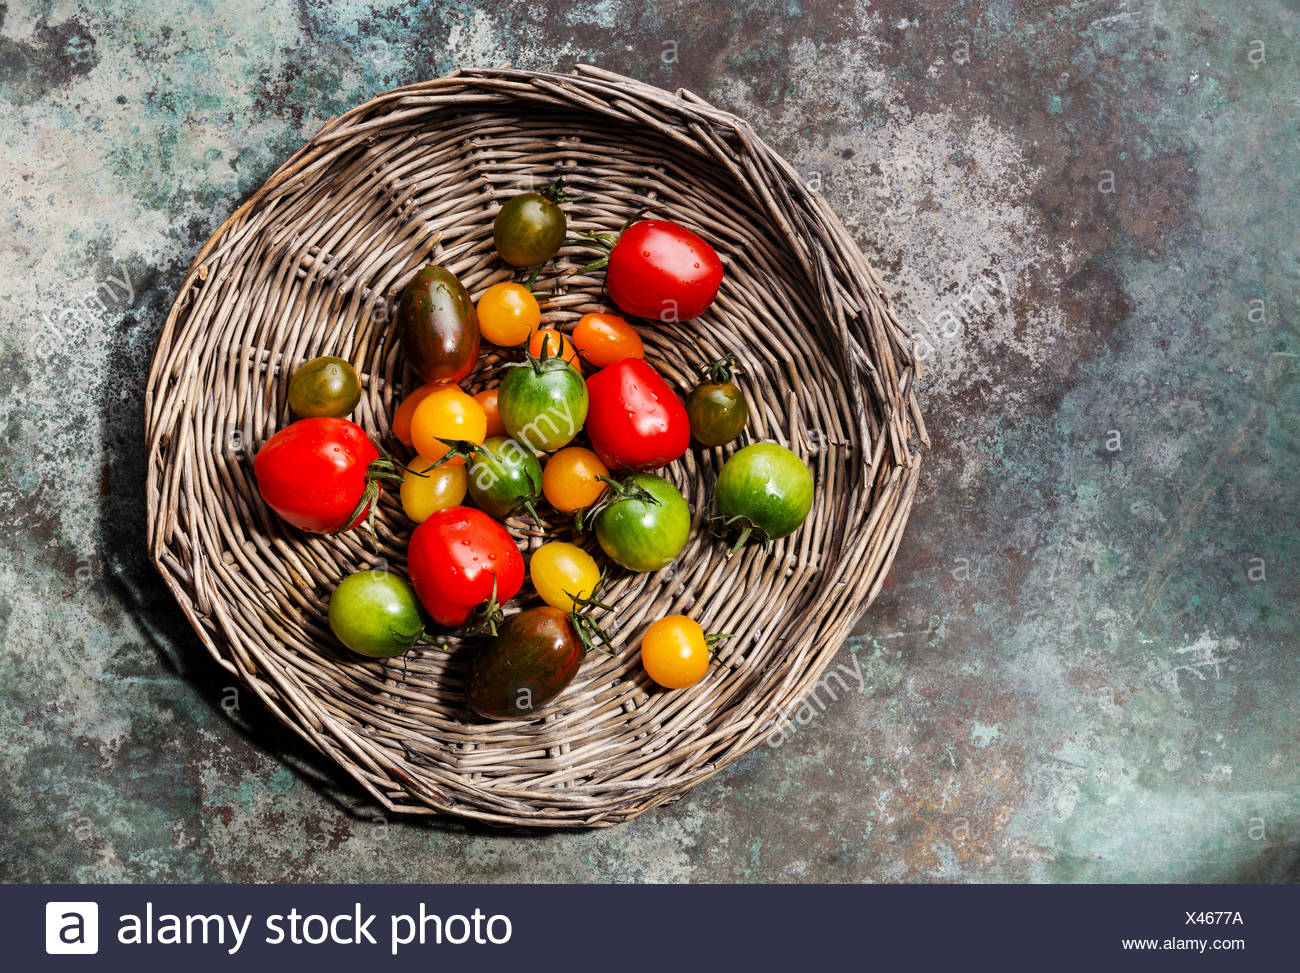 Ripe fresh colorful tomatoes on wicker tray on metal background - Stock Image